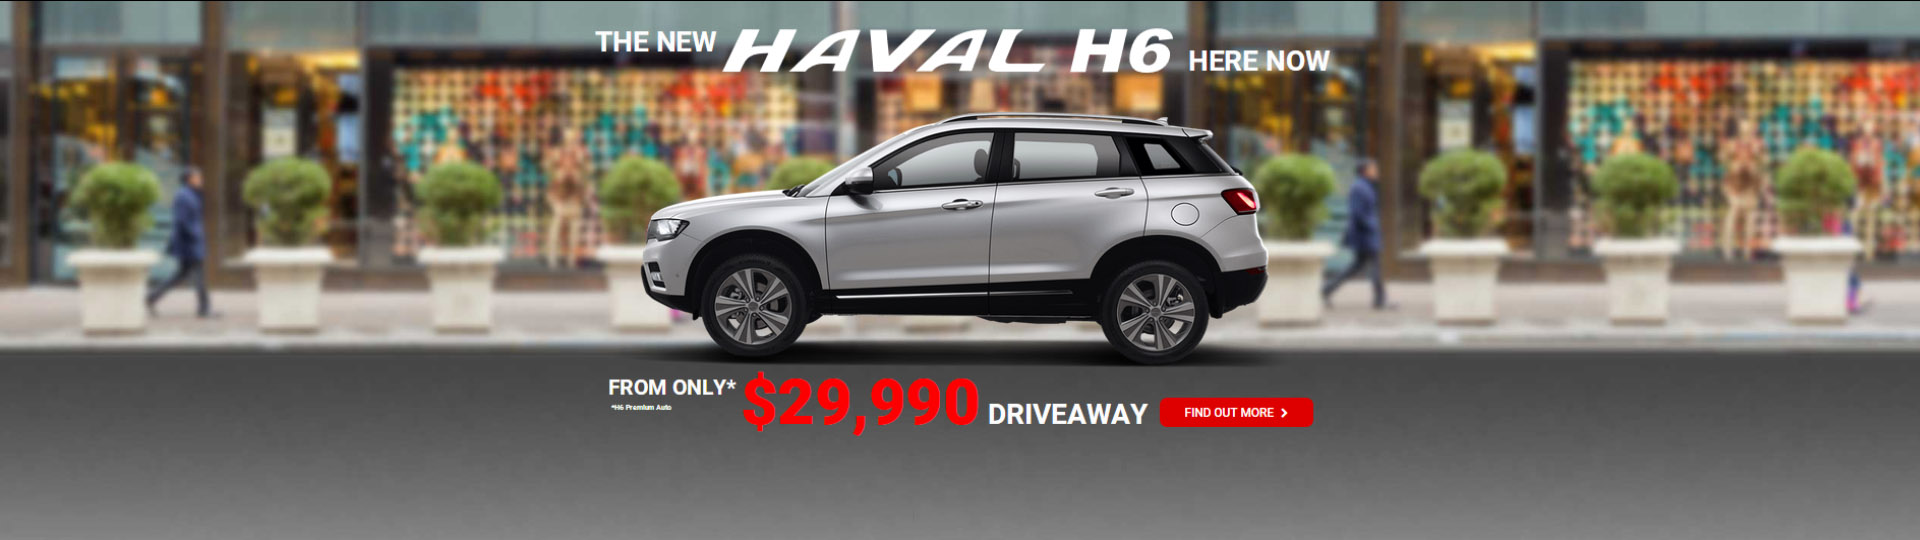 HAVAL H6 FROM $29,990 Driveaway